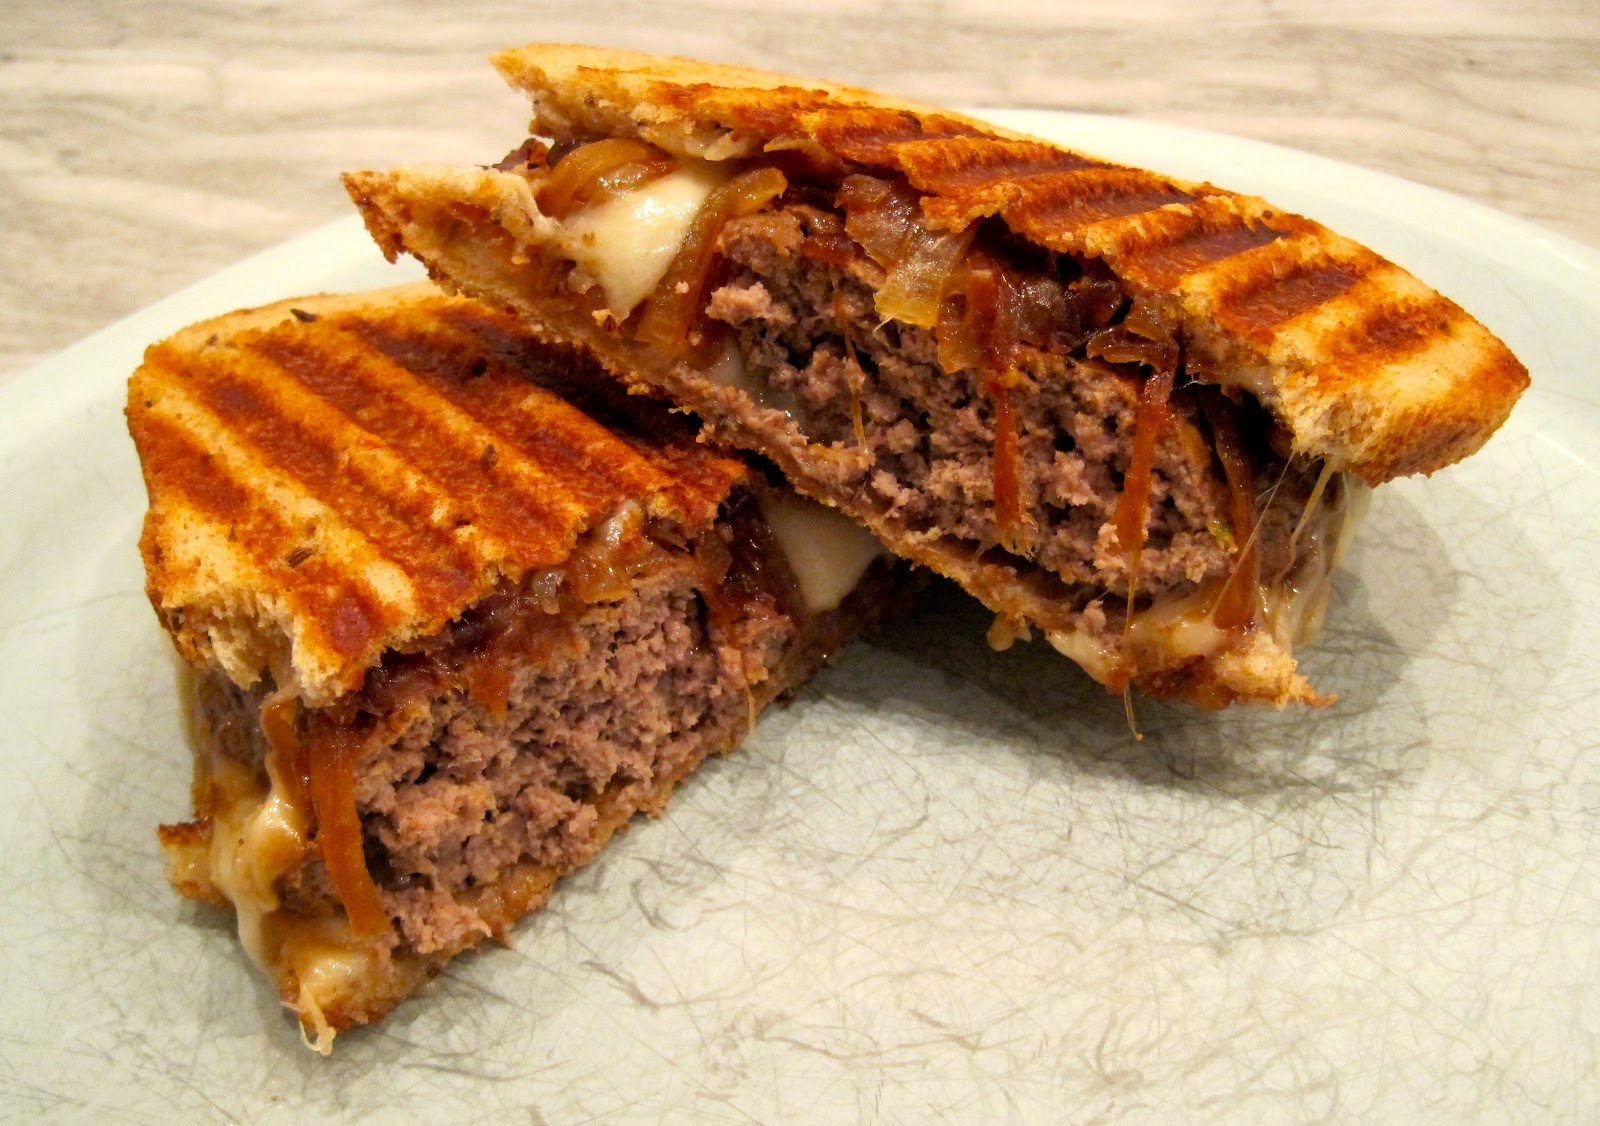 The Wooden Spoon Diaries: Good Old Fashioned Patty Melt